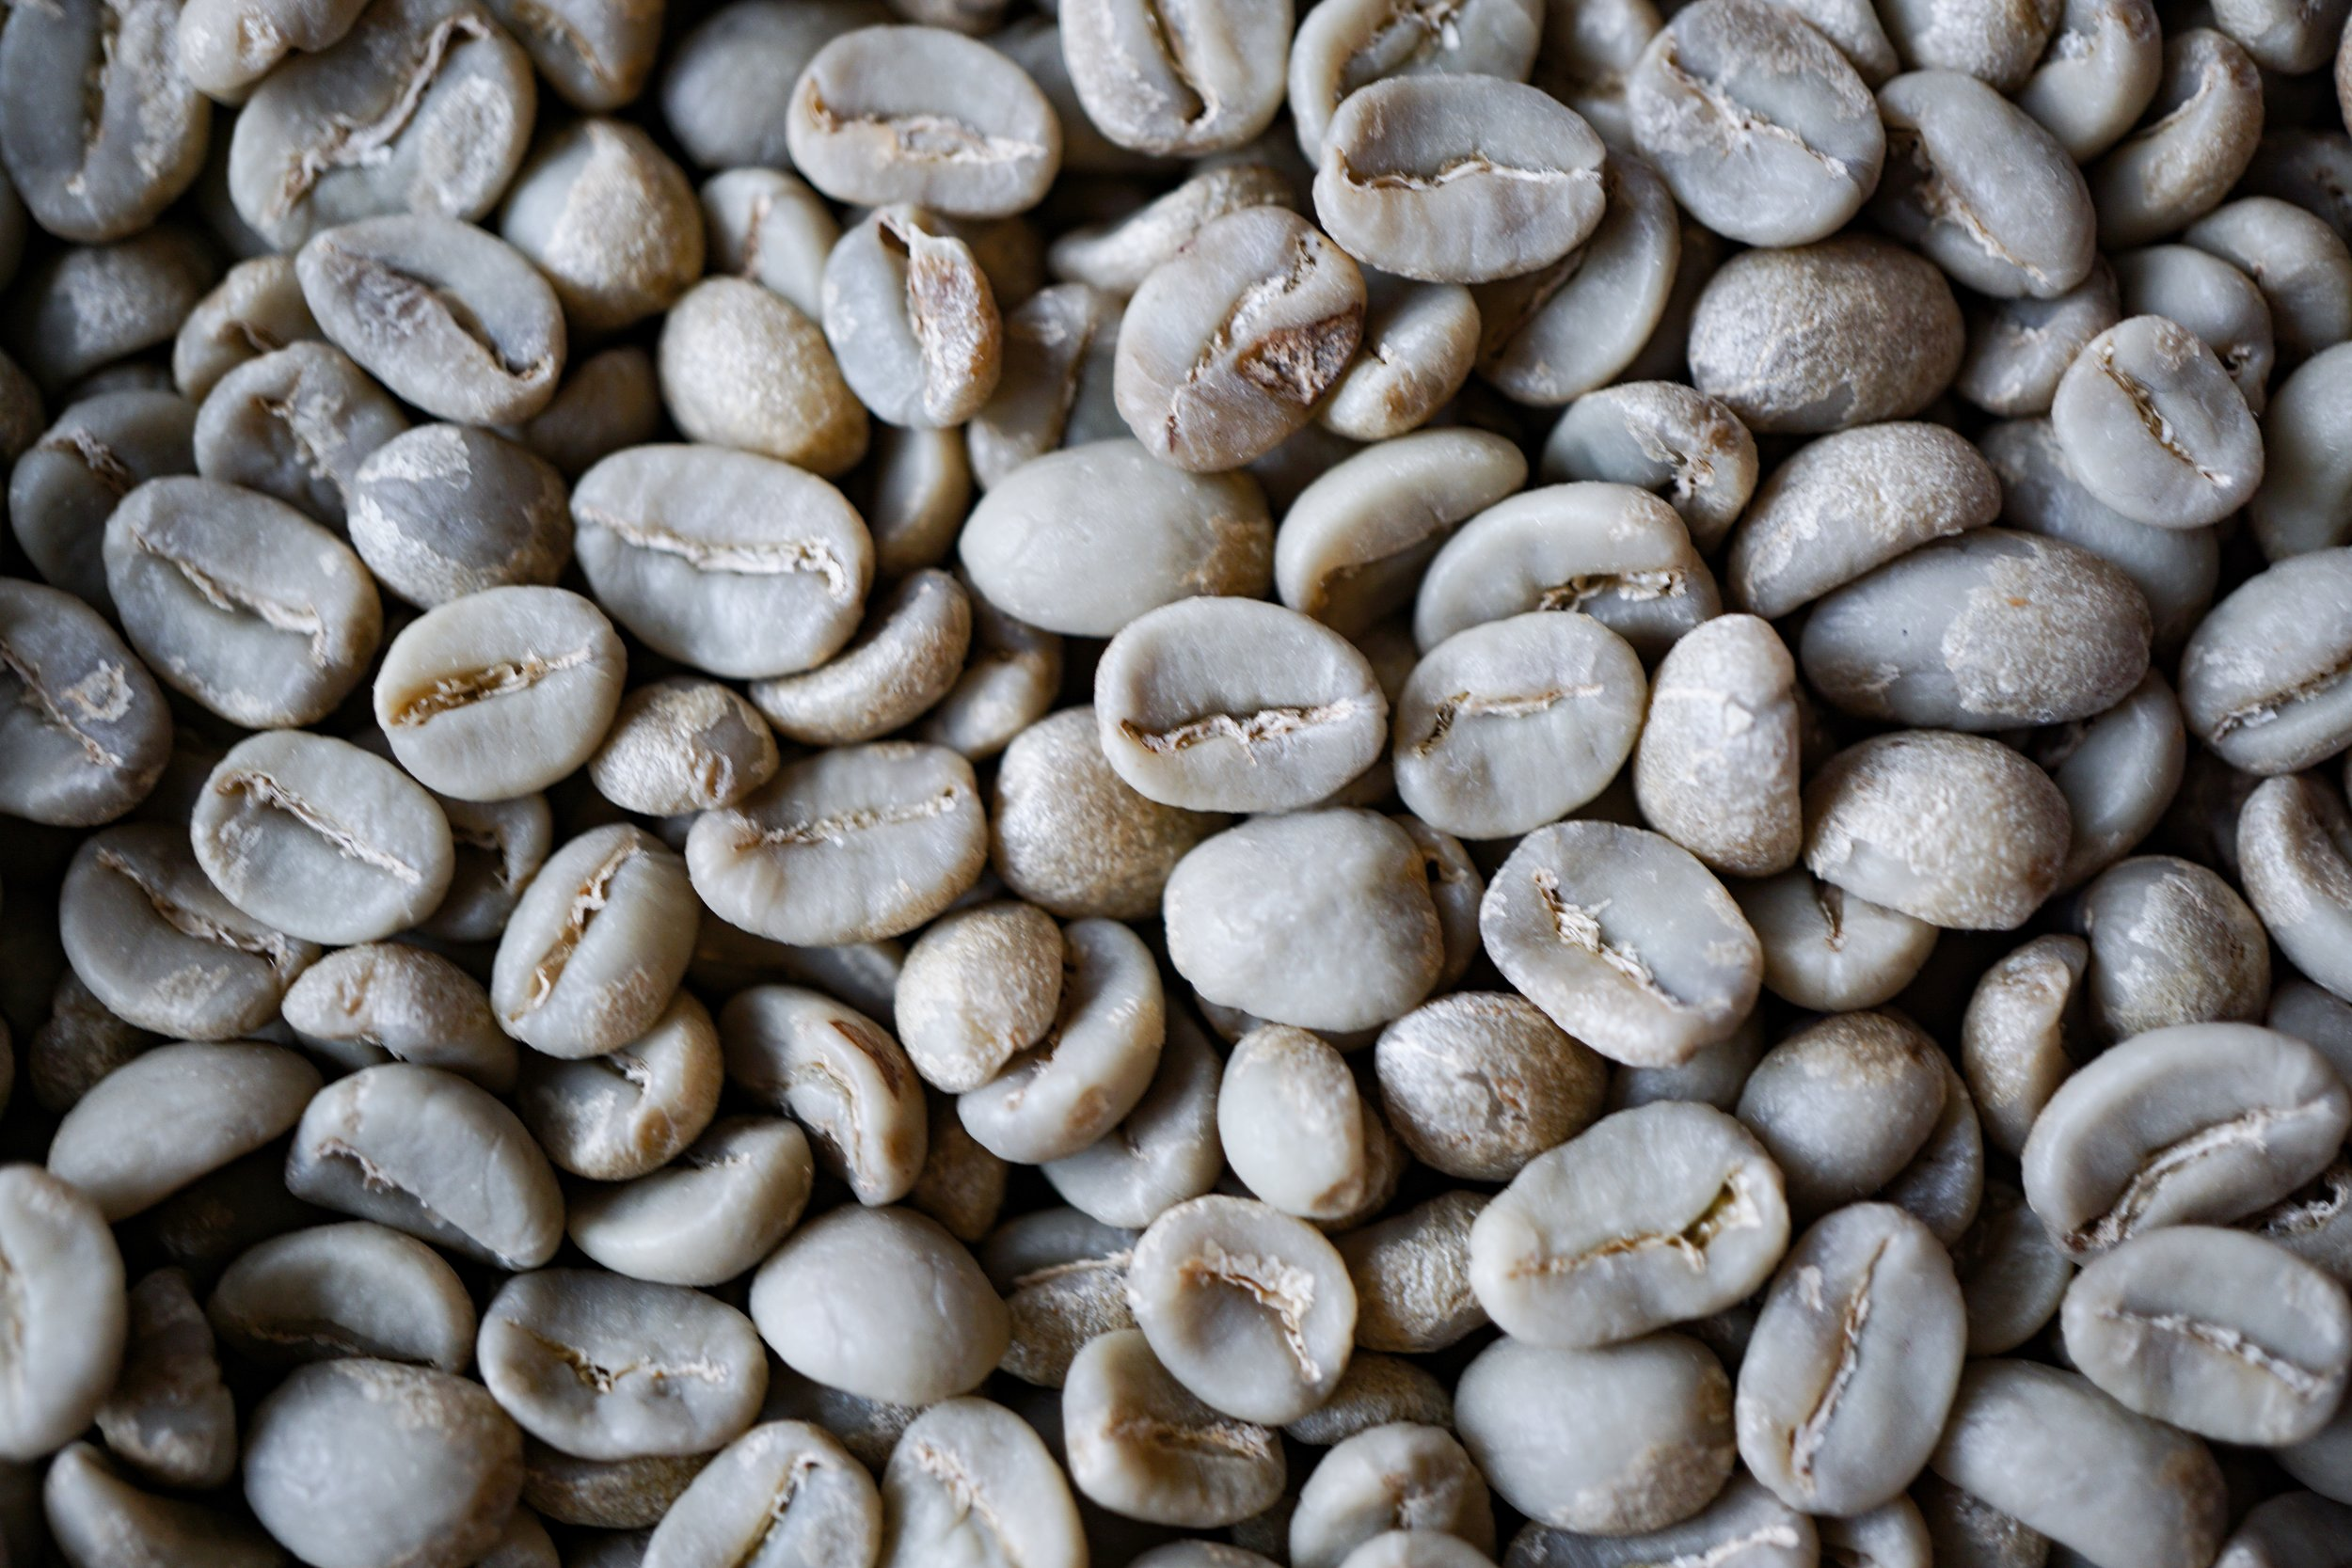 Green or raw coffee beans